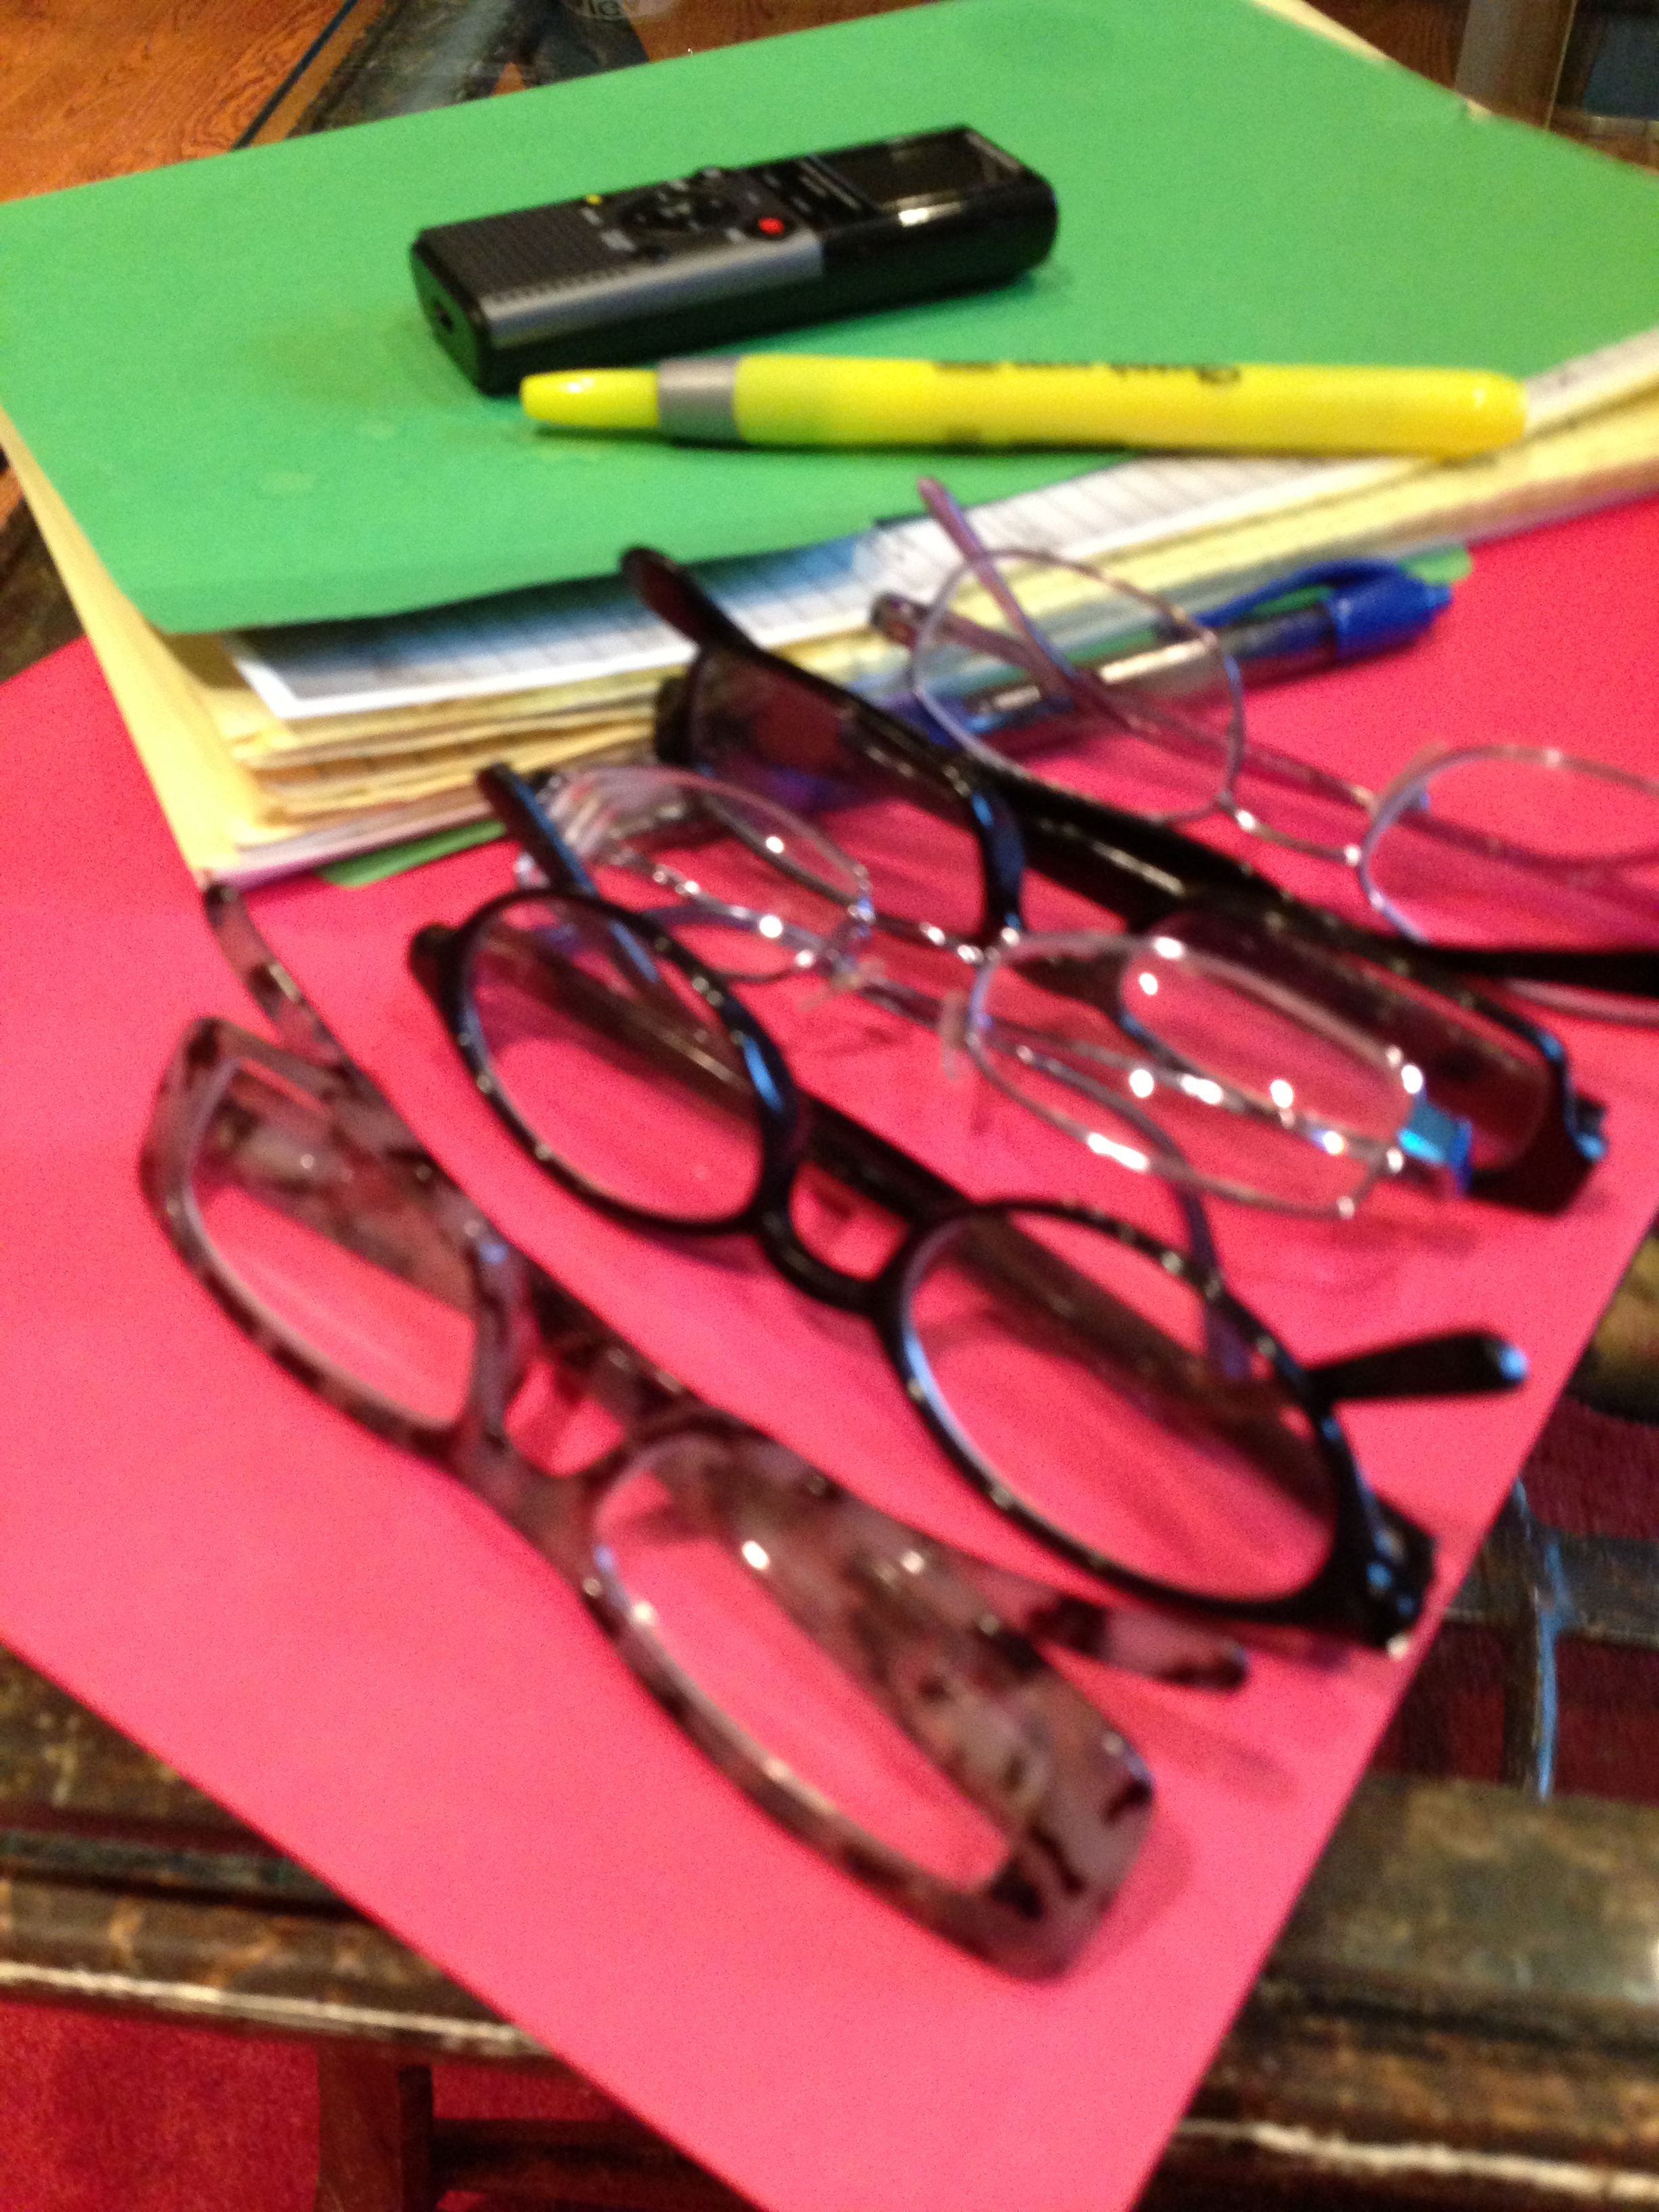 All the reading glasses I could find in the house. Couldn't find my favorite pair of course. Probably on my head.